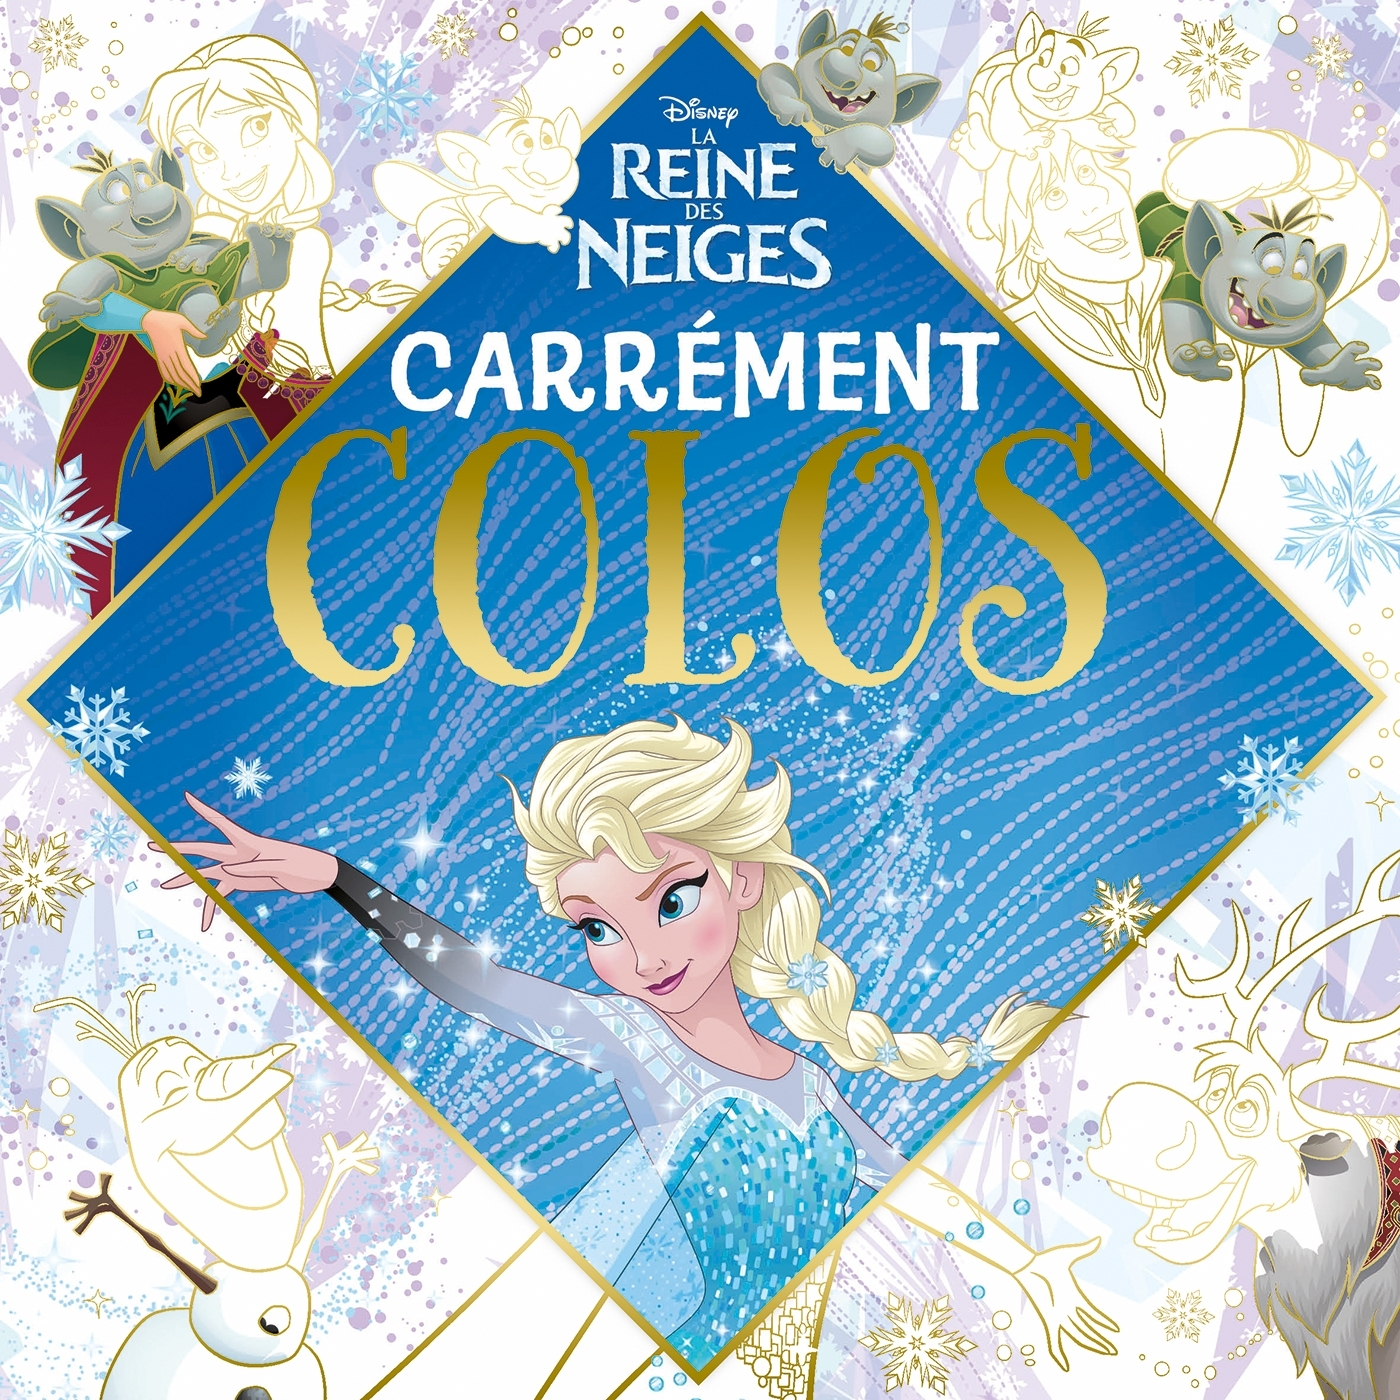 REINE DES NEIGES - CARREMENT COLOS